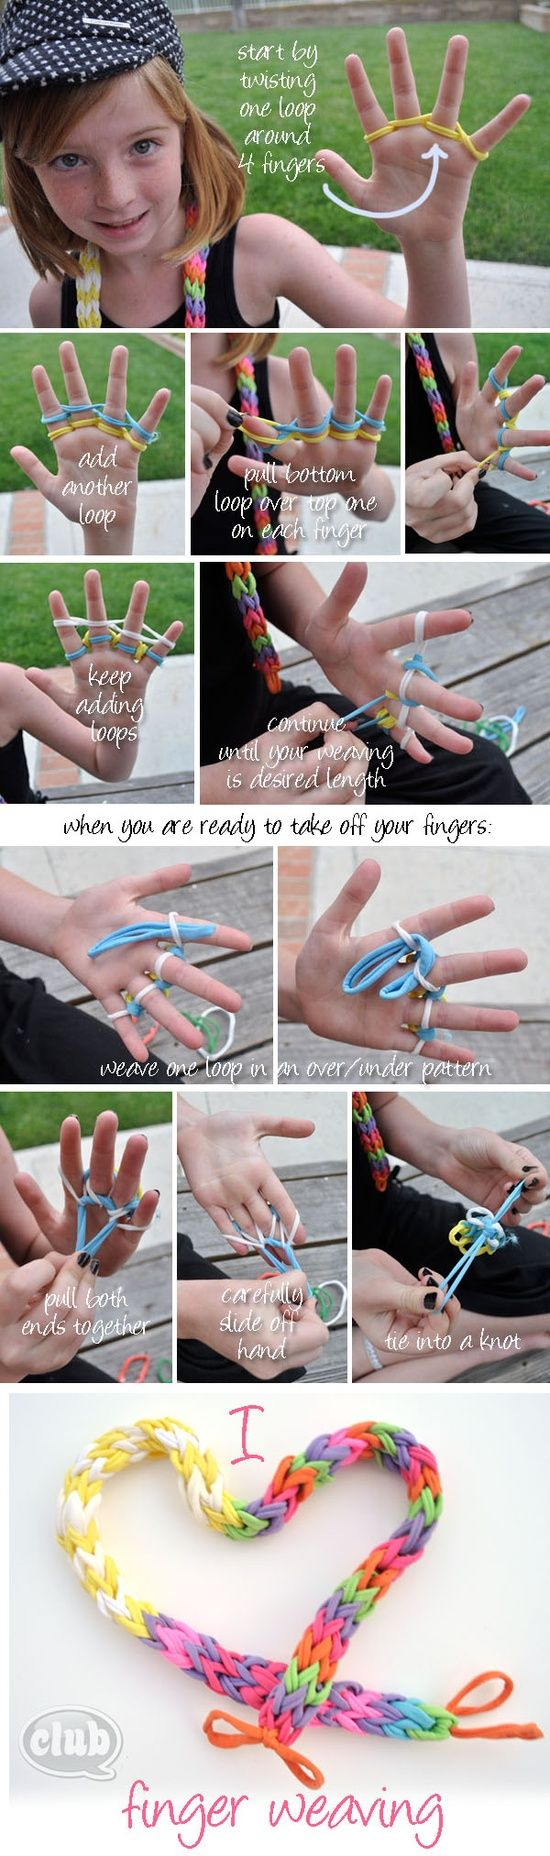 Learn to finger weave.